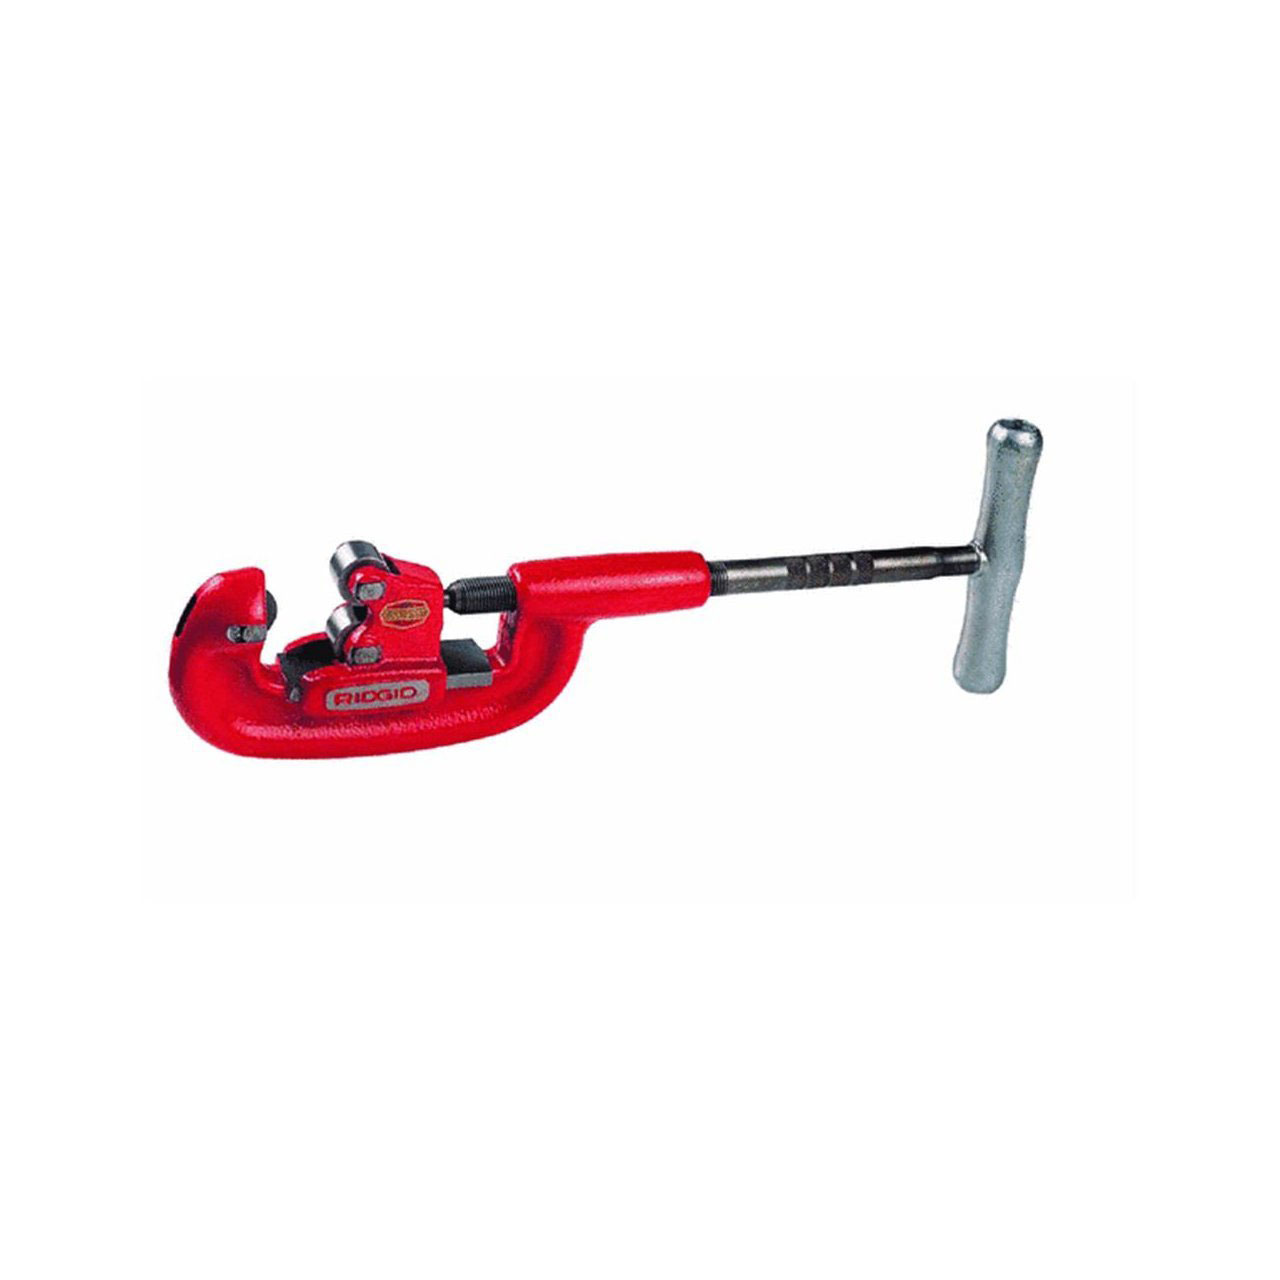 RIDGID 32825 - 3 Wheel Heavy Duty Pipe Cutter; Cap: 1/8 to 2in